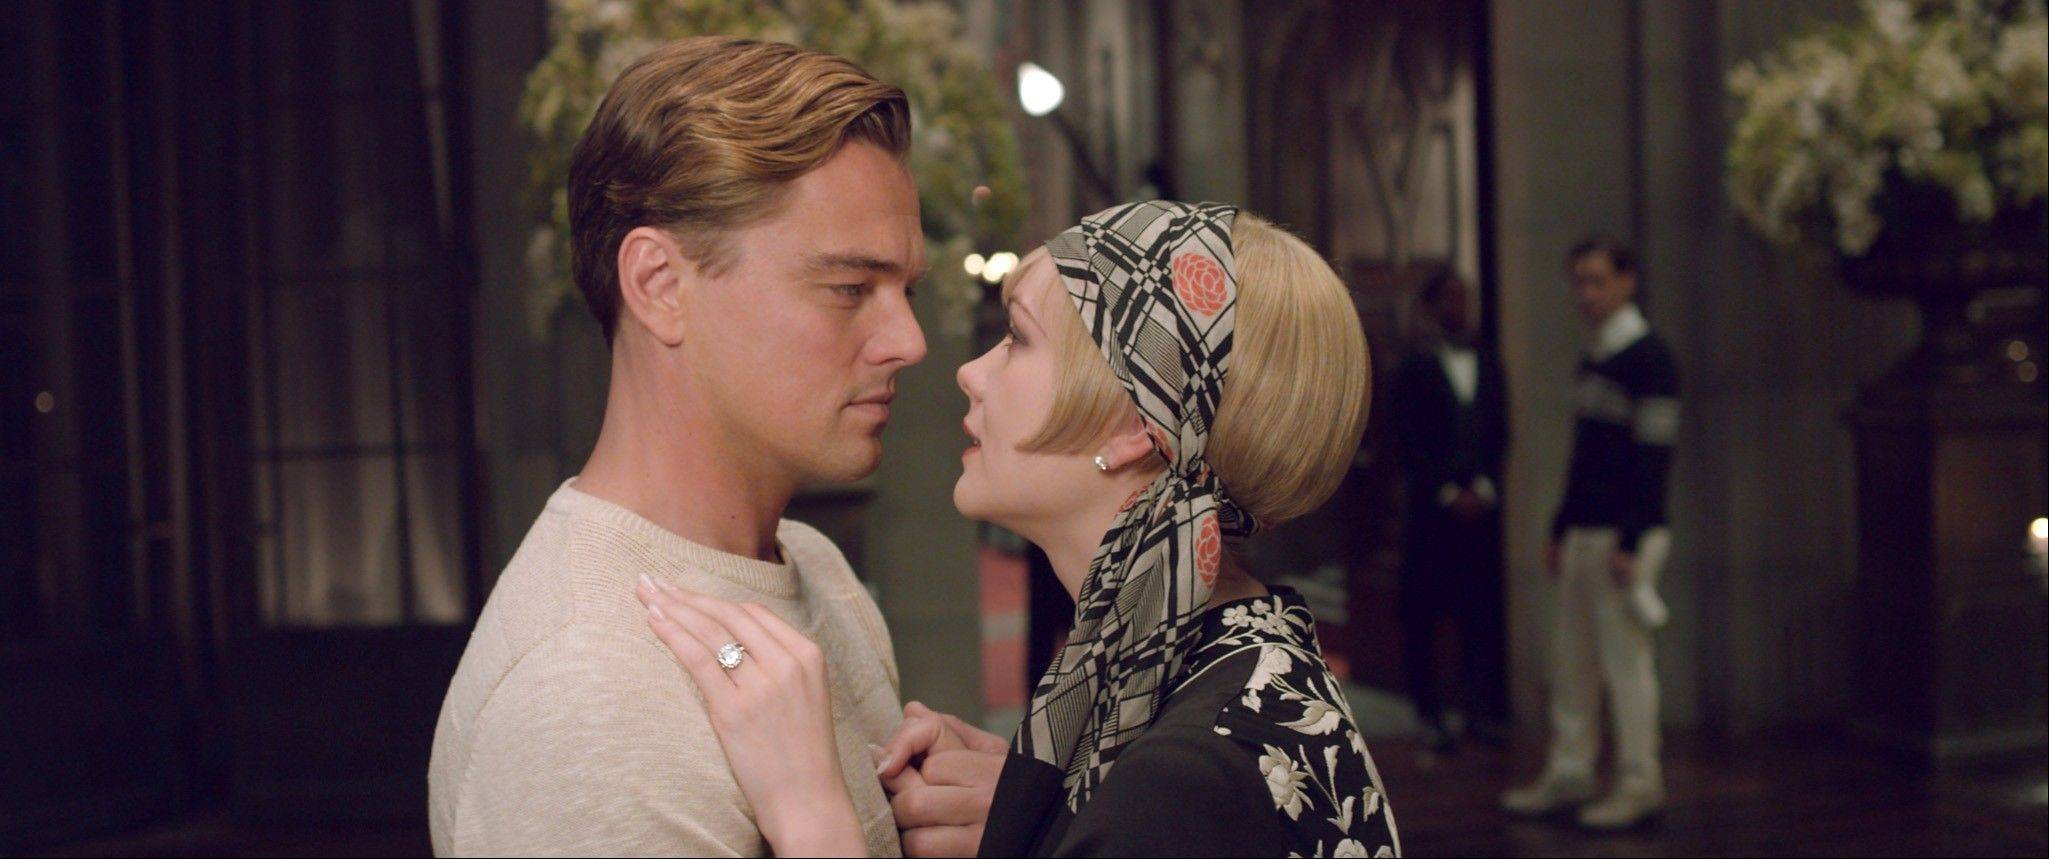 "Jay Gatsby (Leonardo DiCaprio) romances the married Daisy (Carey Mulligan) in Baz Luhrmann's eye-popping adaptation of F. Scott Fitzgerald's ""The Great Gatsby."""